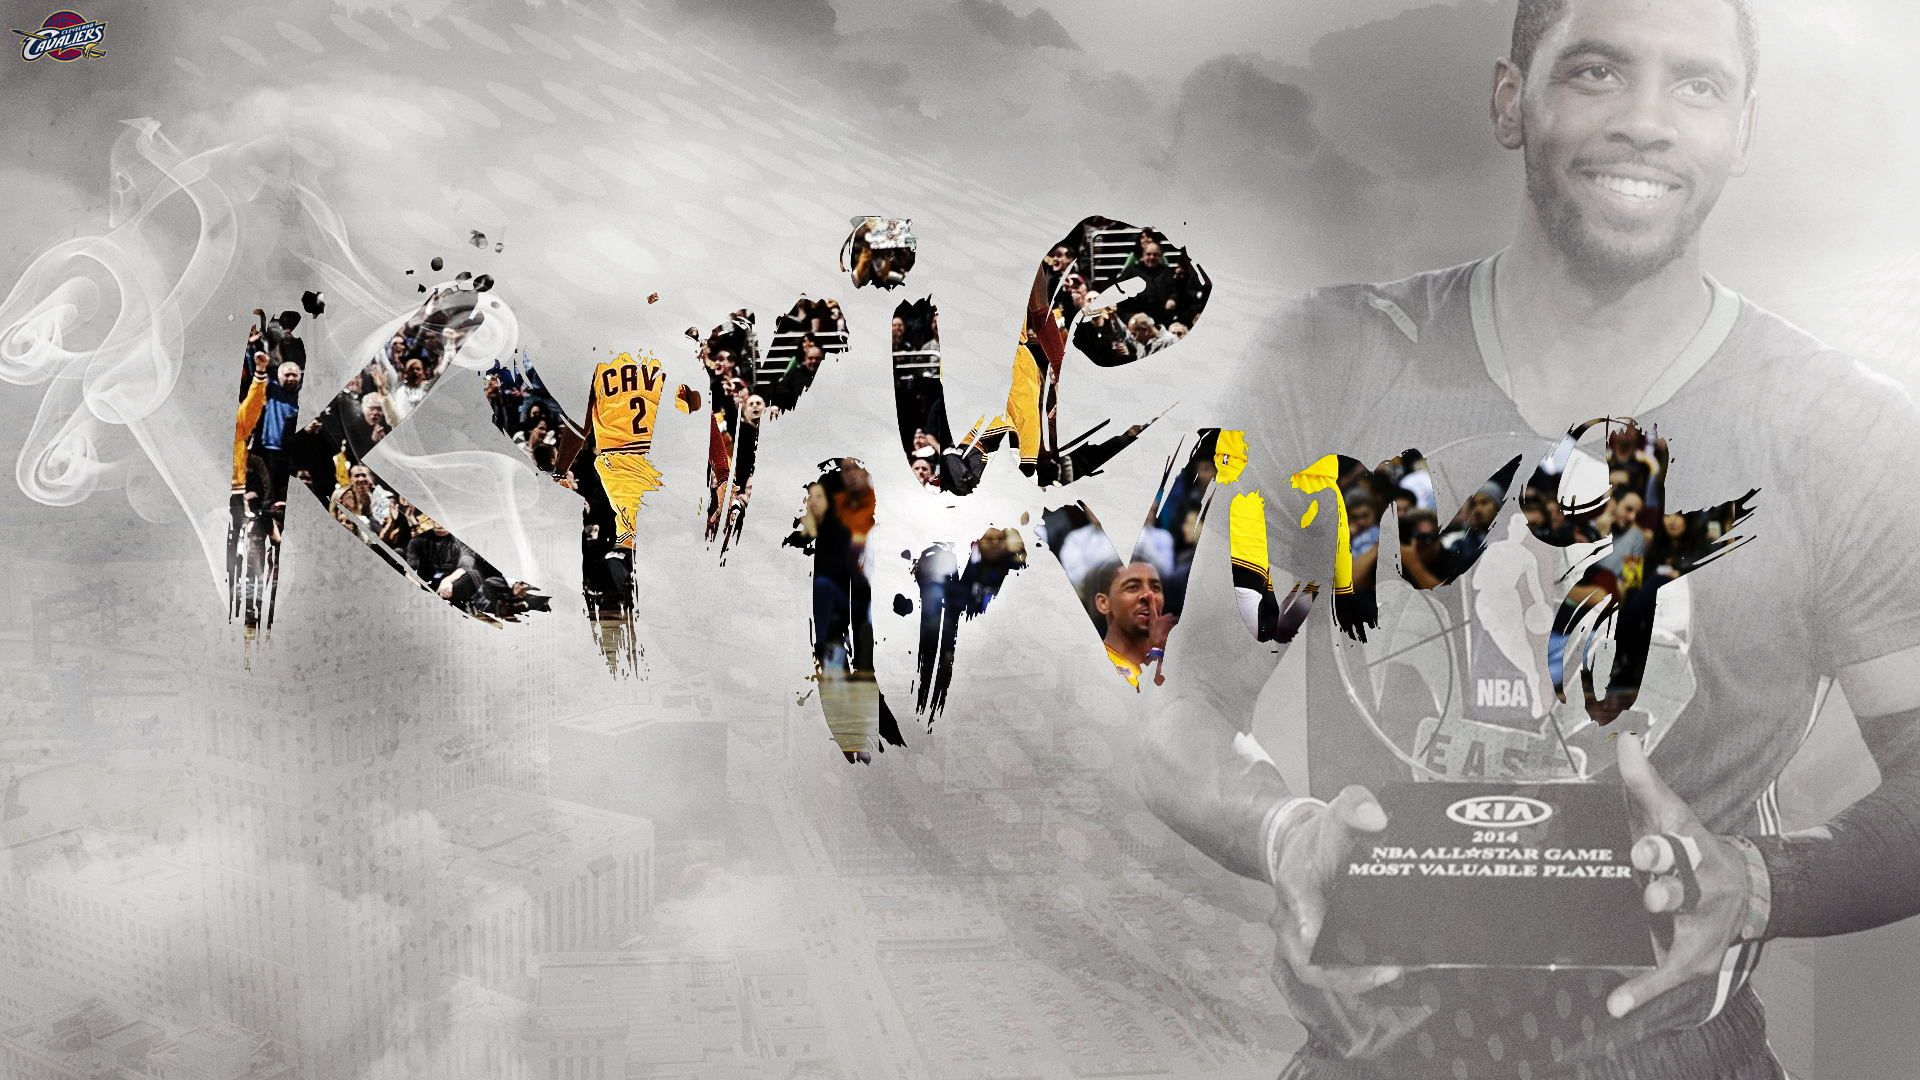 kyrie irving mvp wallpaper by engin on 500px cleveland